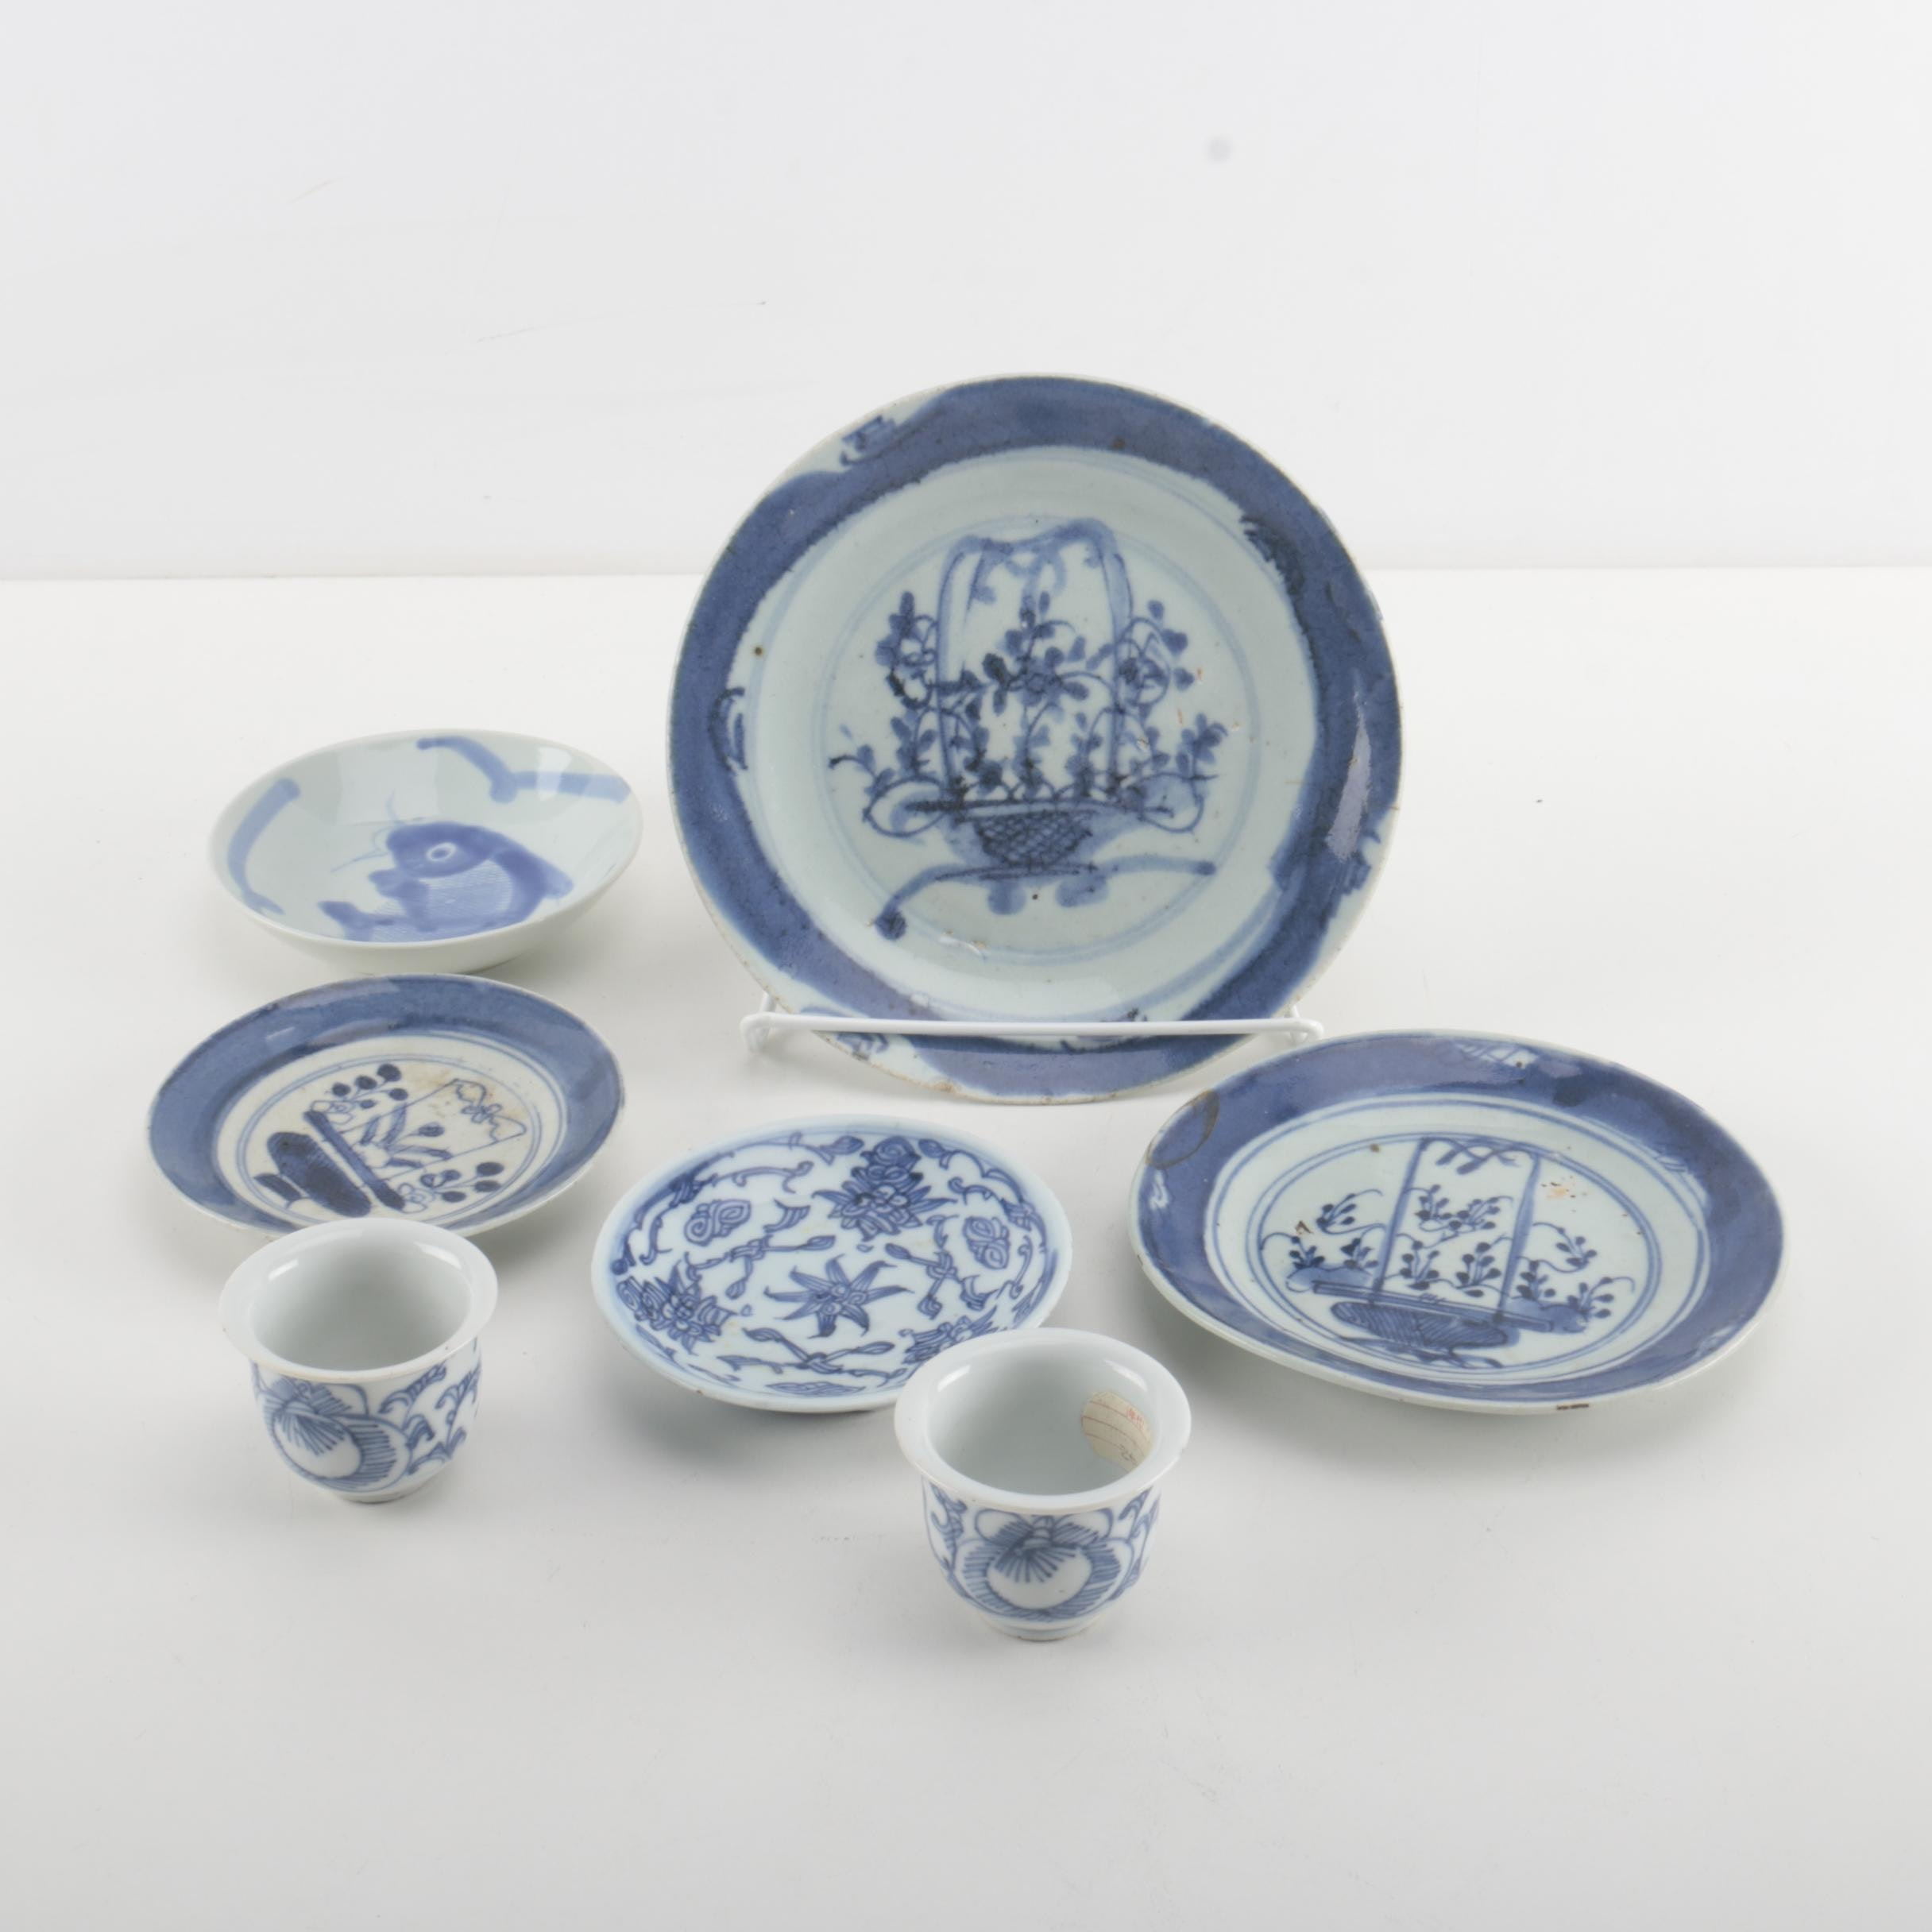 Vintage Chinese Porcelain With Jian Ding Seals